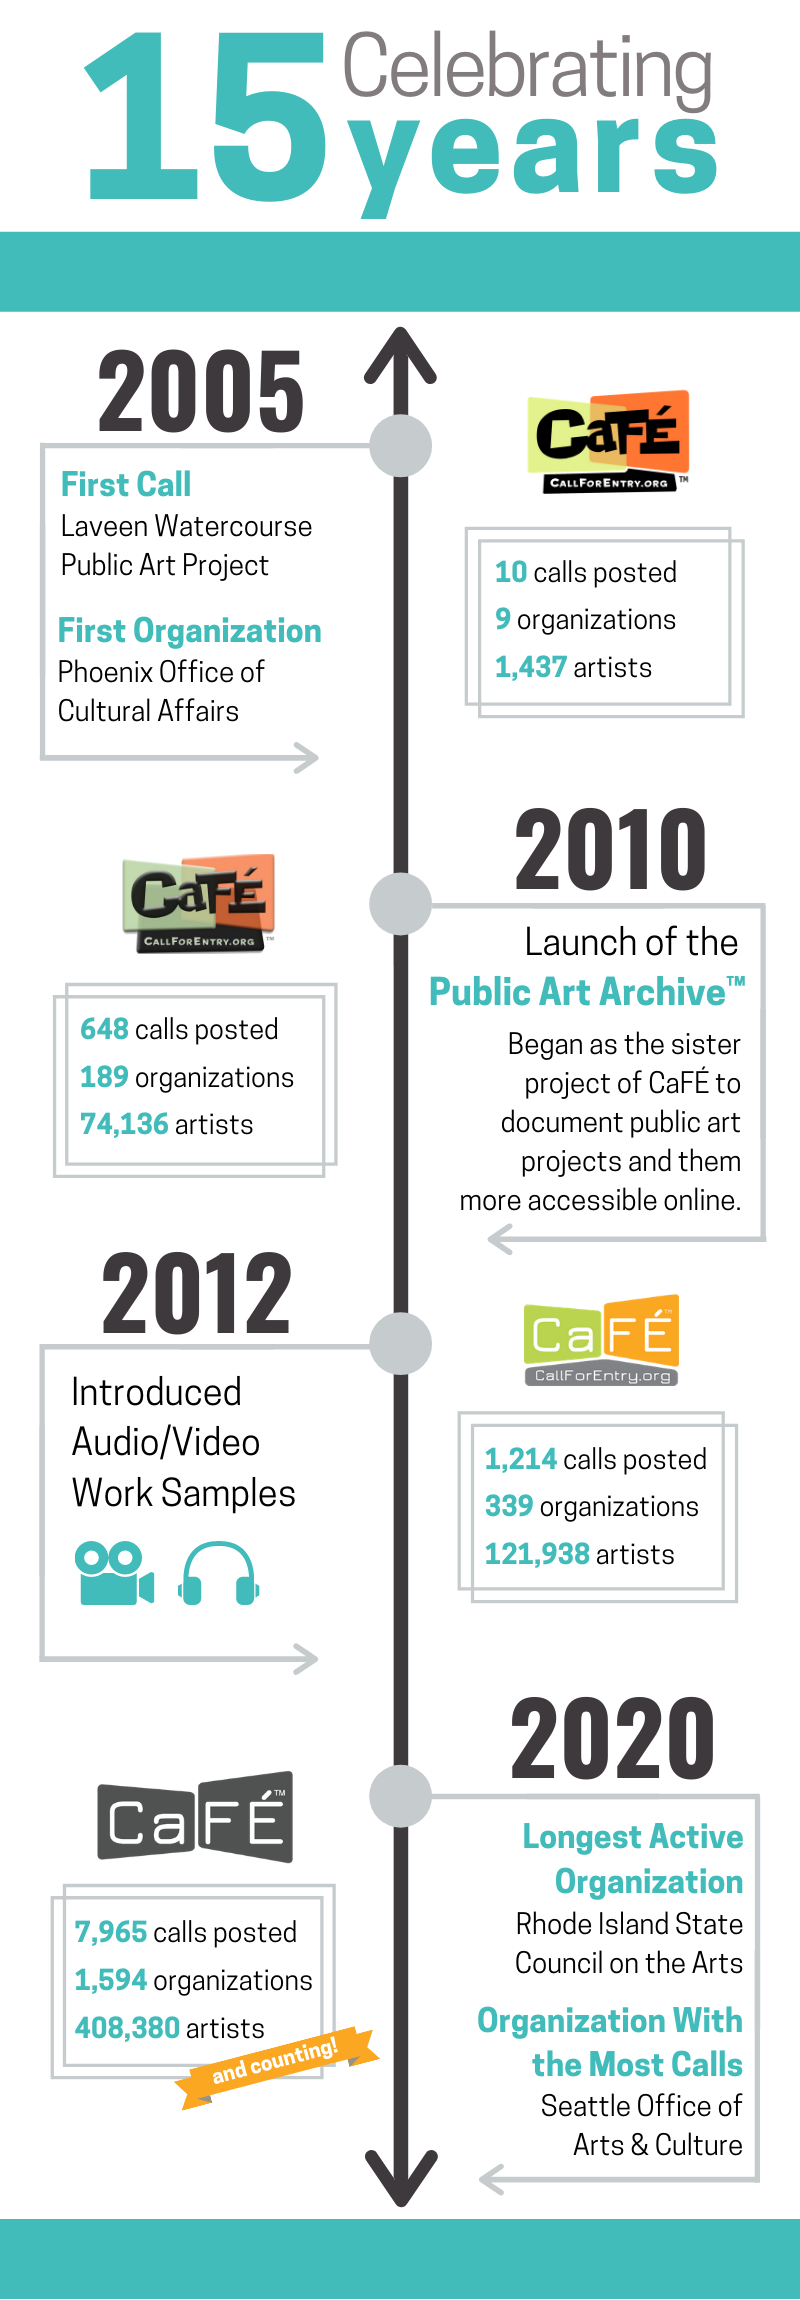 An infographic highlighting the work of CaFE. It starts in 2005 and goes up to 2020. Below the image is a text version of the timeline.